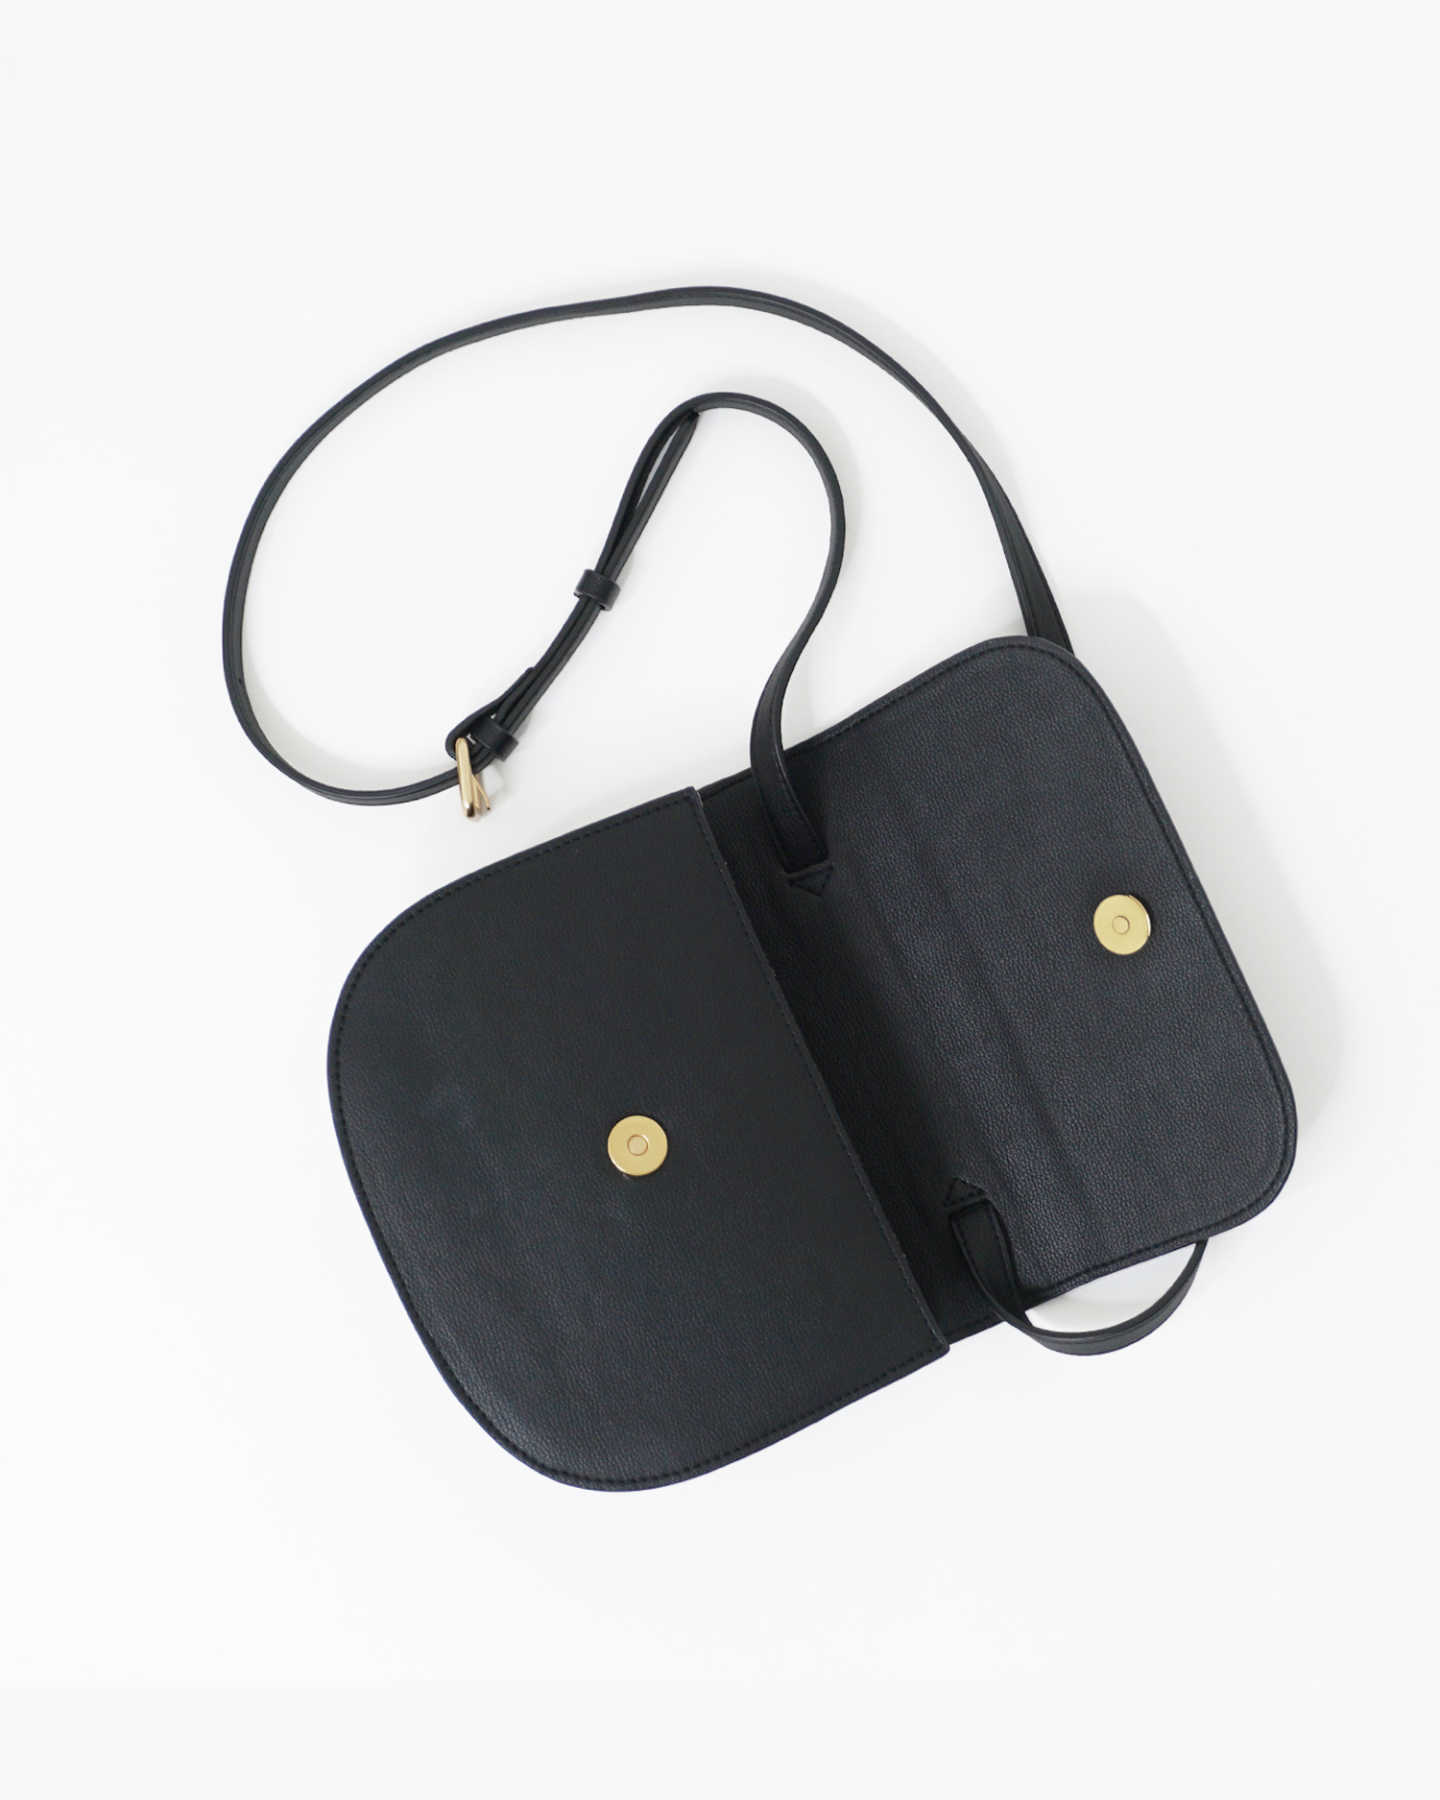 Vegan Saddle Bag - Black - 5